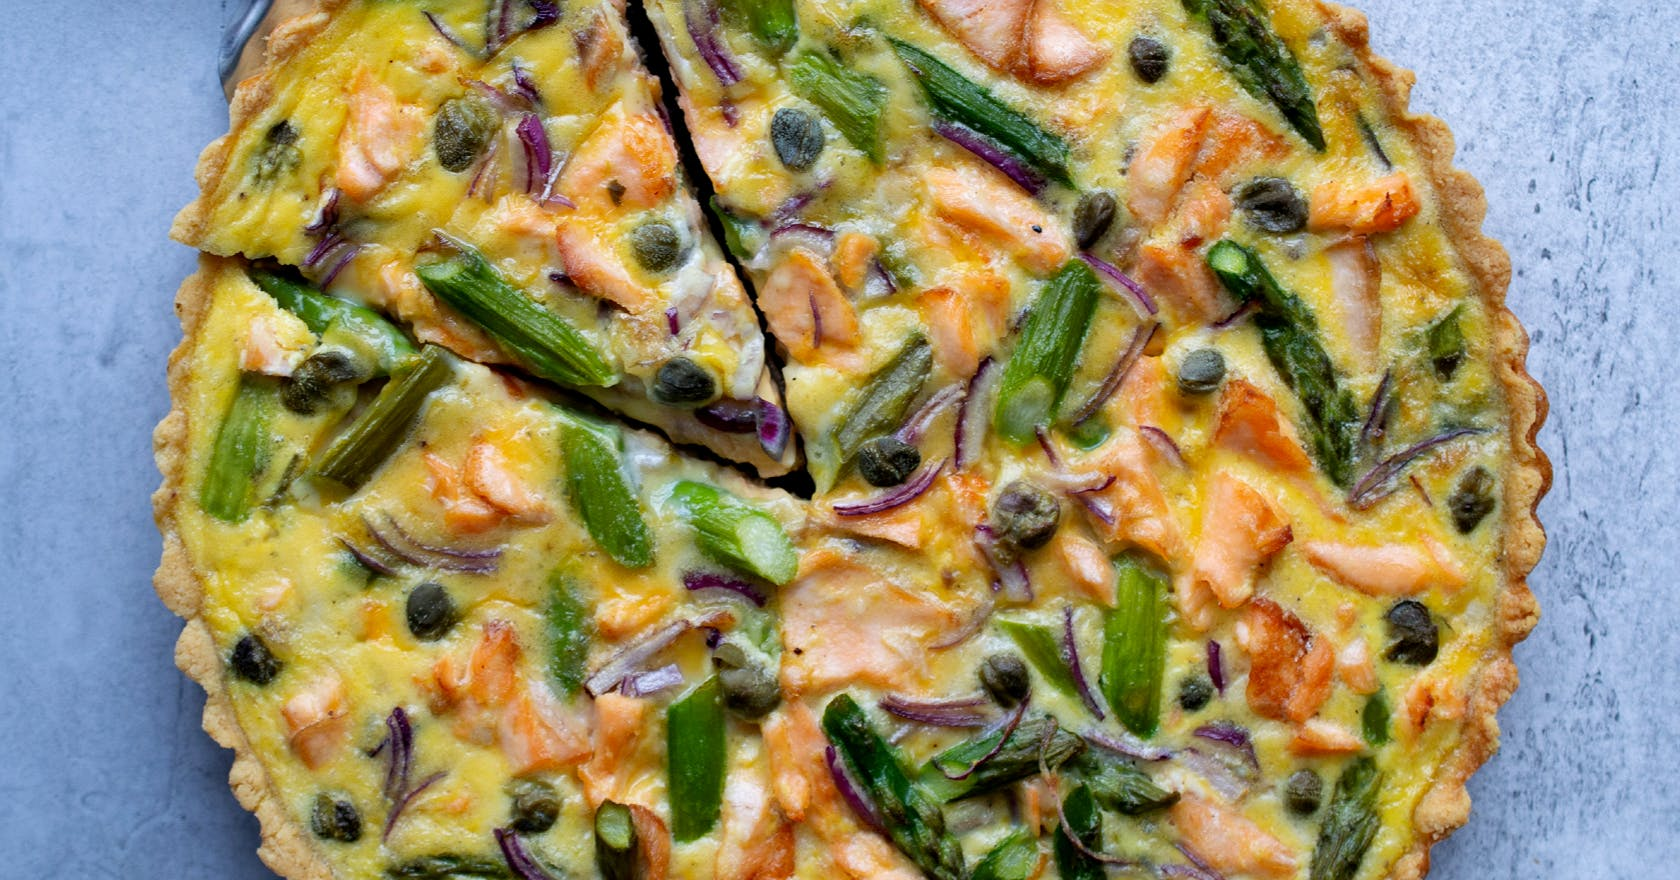 Try this brain-boosting salmon and asparagus quiche